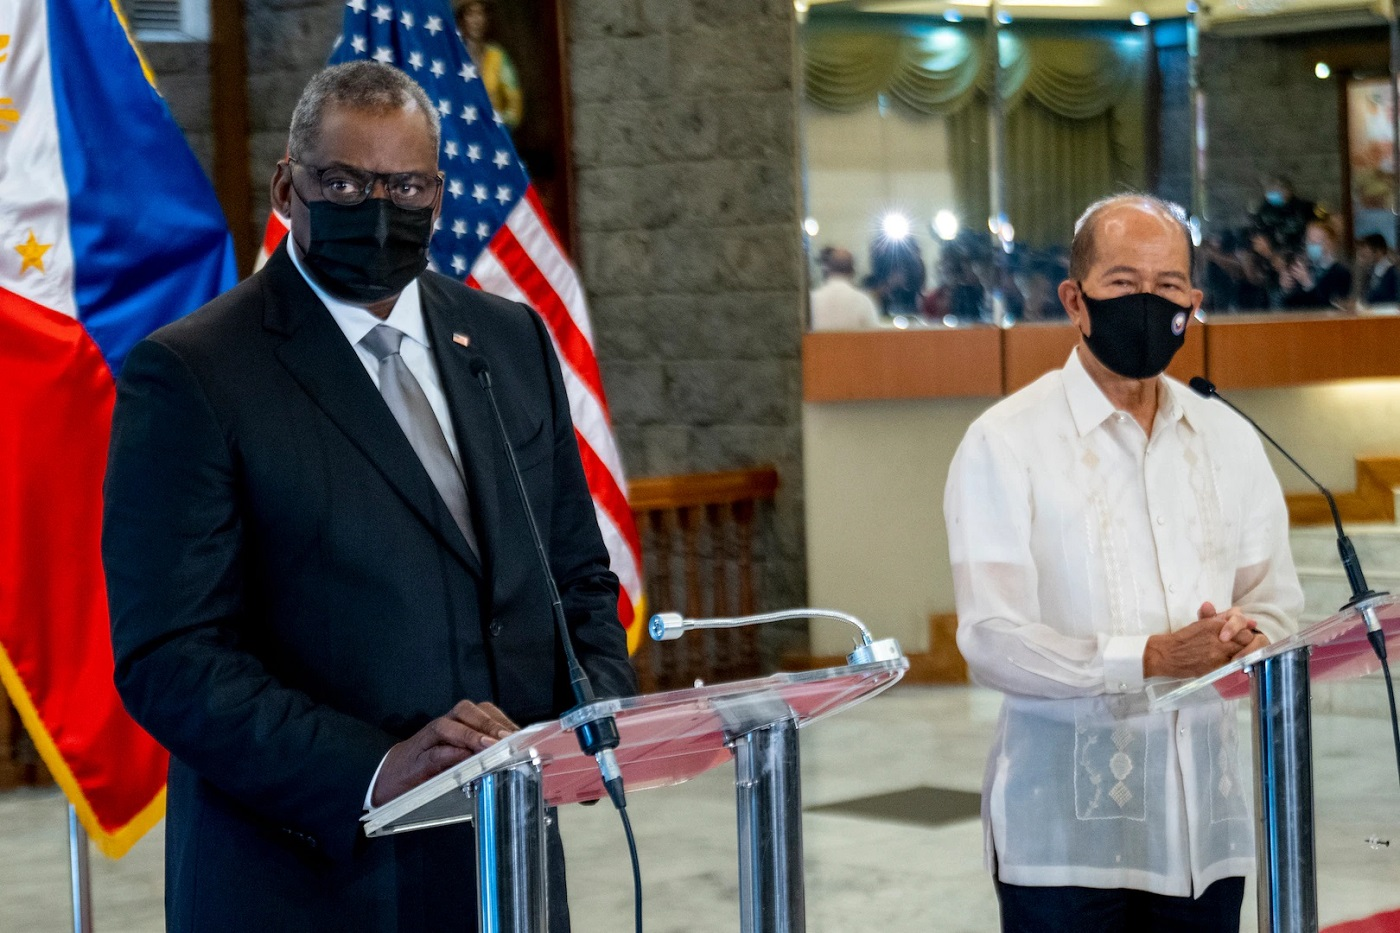 Philippine President Restores Visiting Forces Agreement (VFA) with the United States